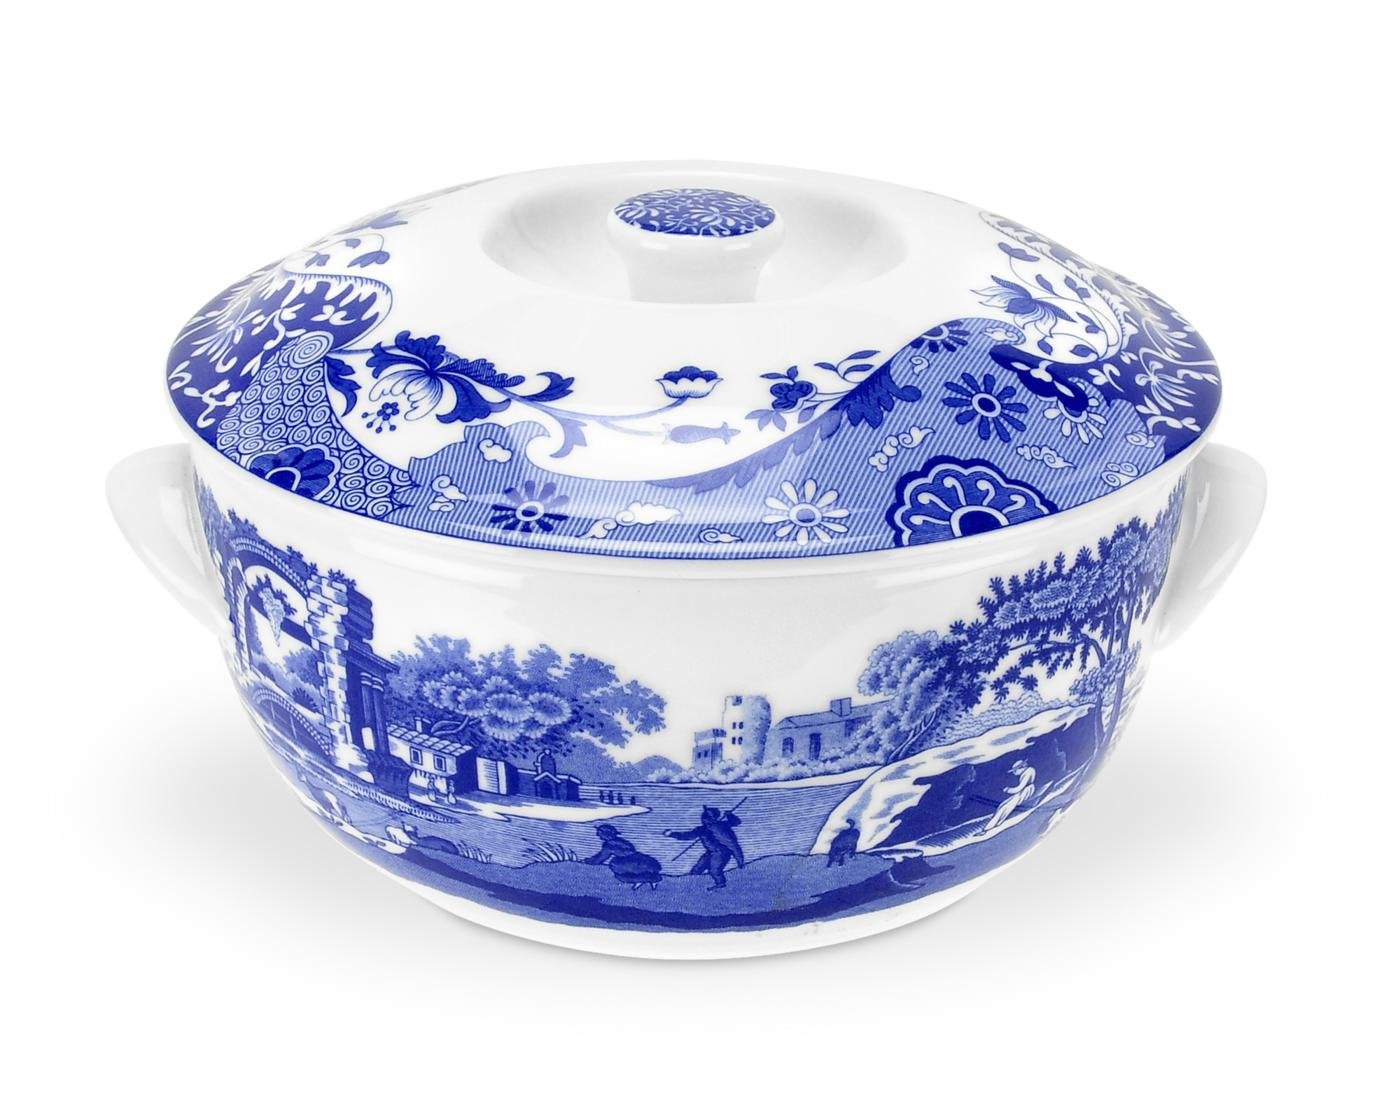 Spode Blue Italian Round Covered Deep Dish by Spode